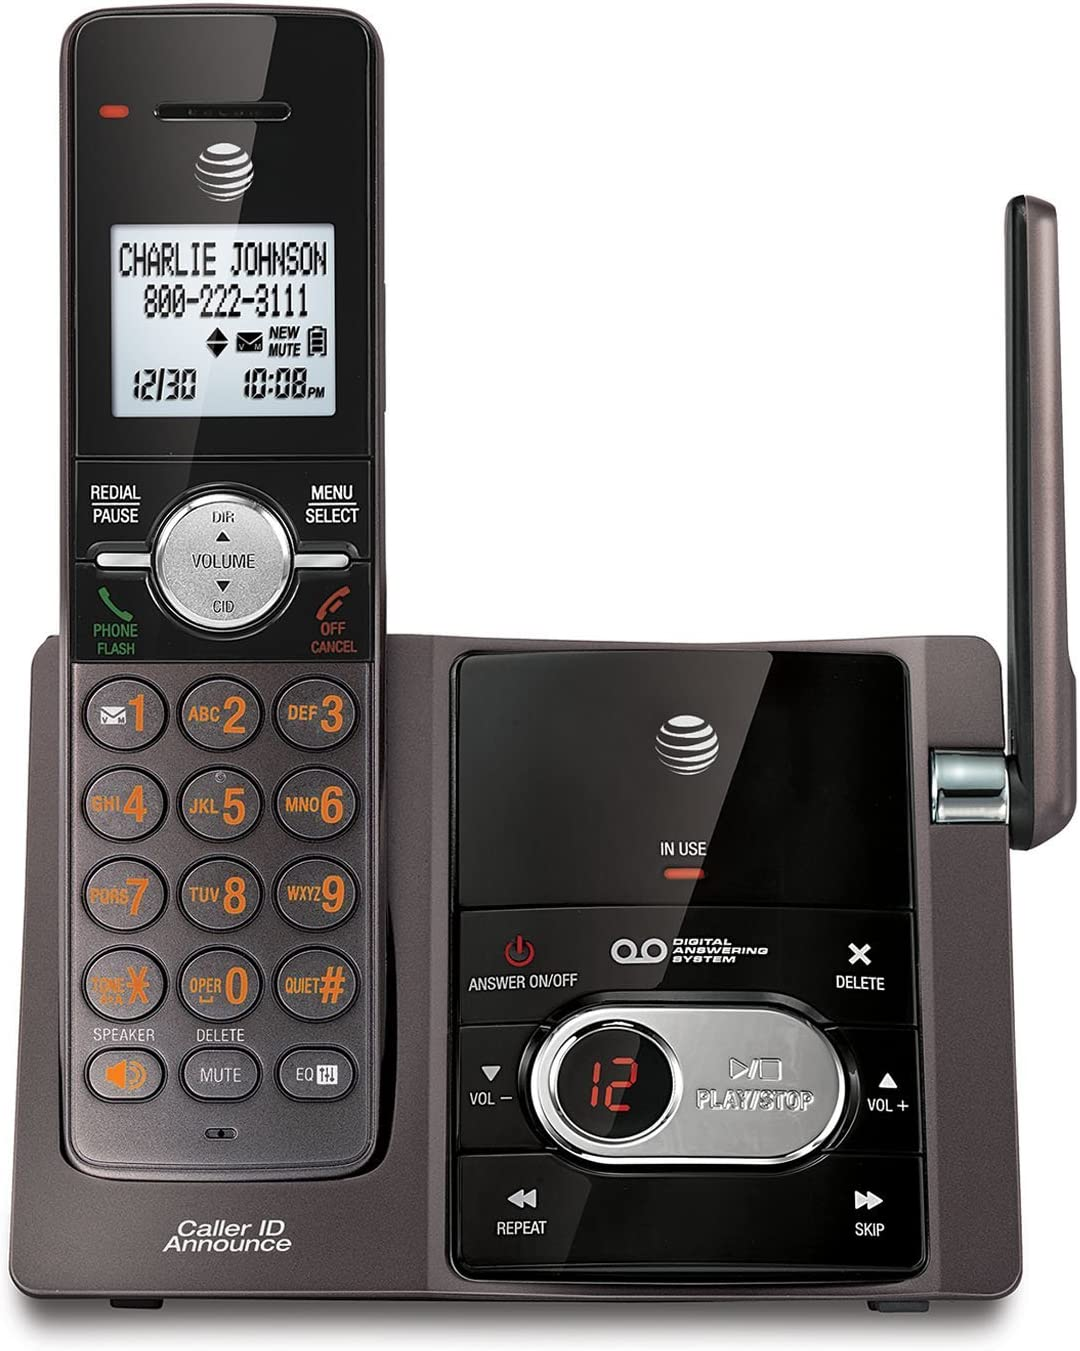 AT&T CL82143 DECT 6.0 Cordless Phone with Digital Answering System and Caller ID, Expandable up to 12 Handsets, Black